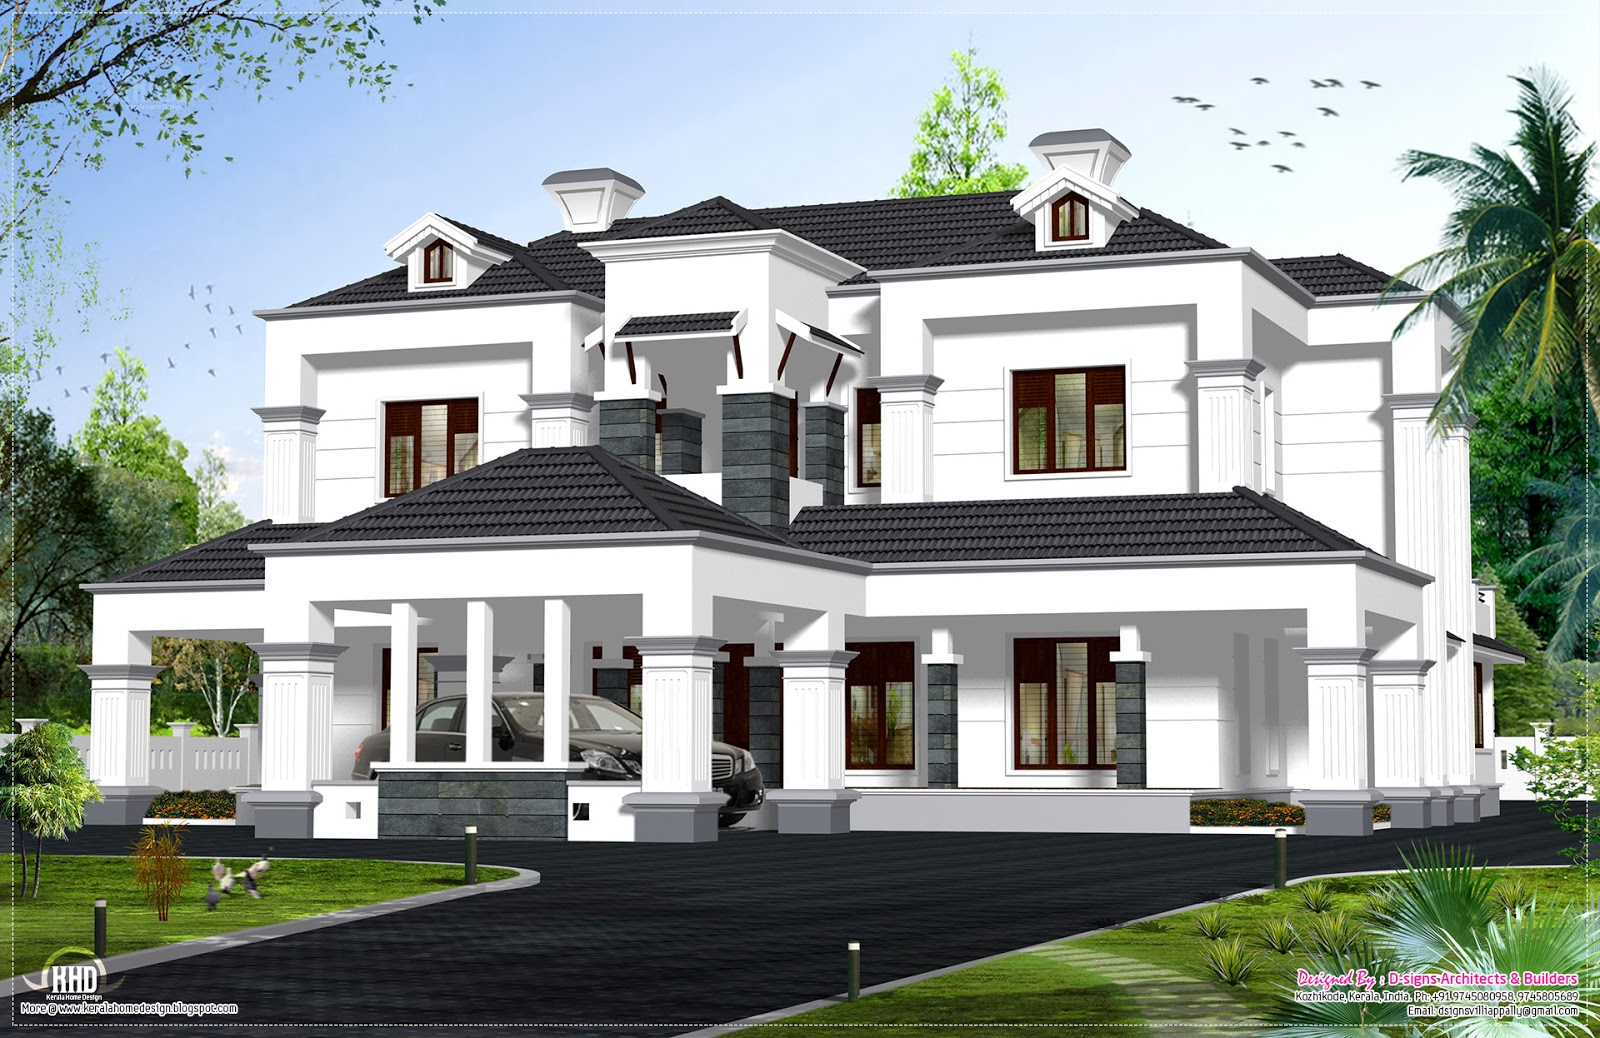 Victorian model house exterior kerala home design and for Home front design model